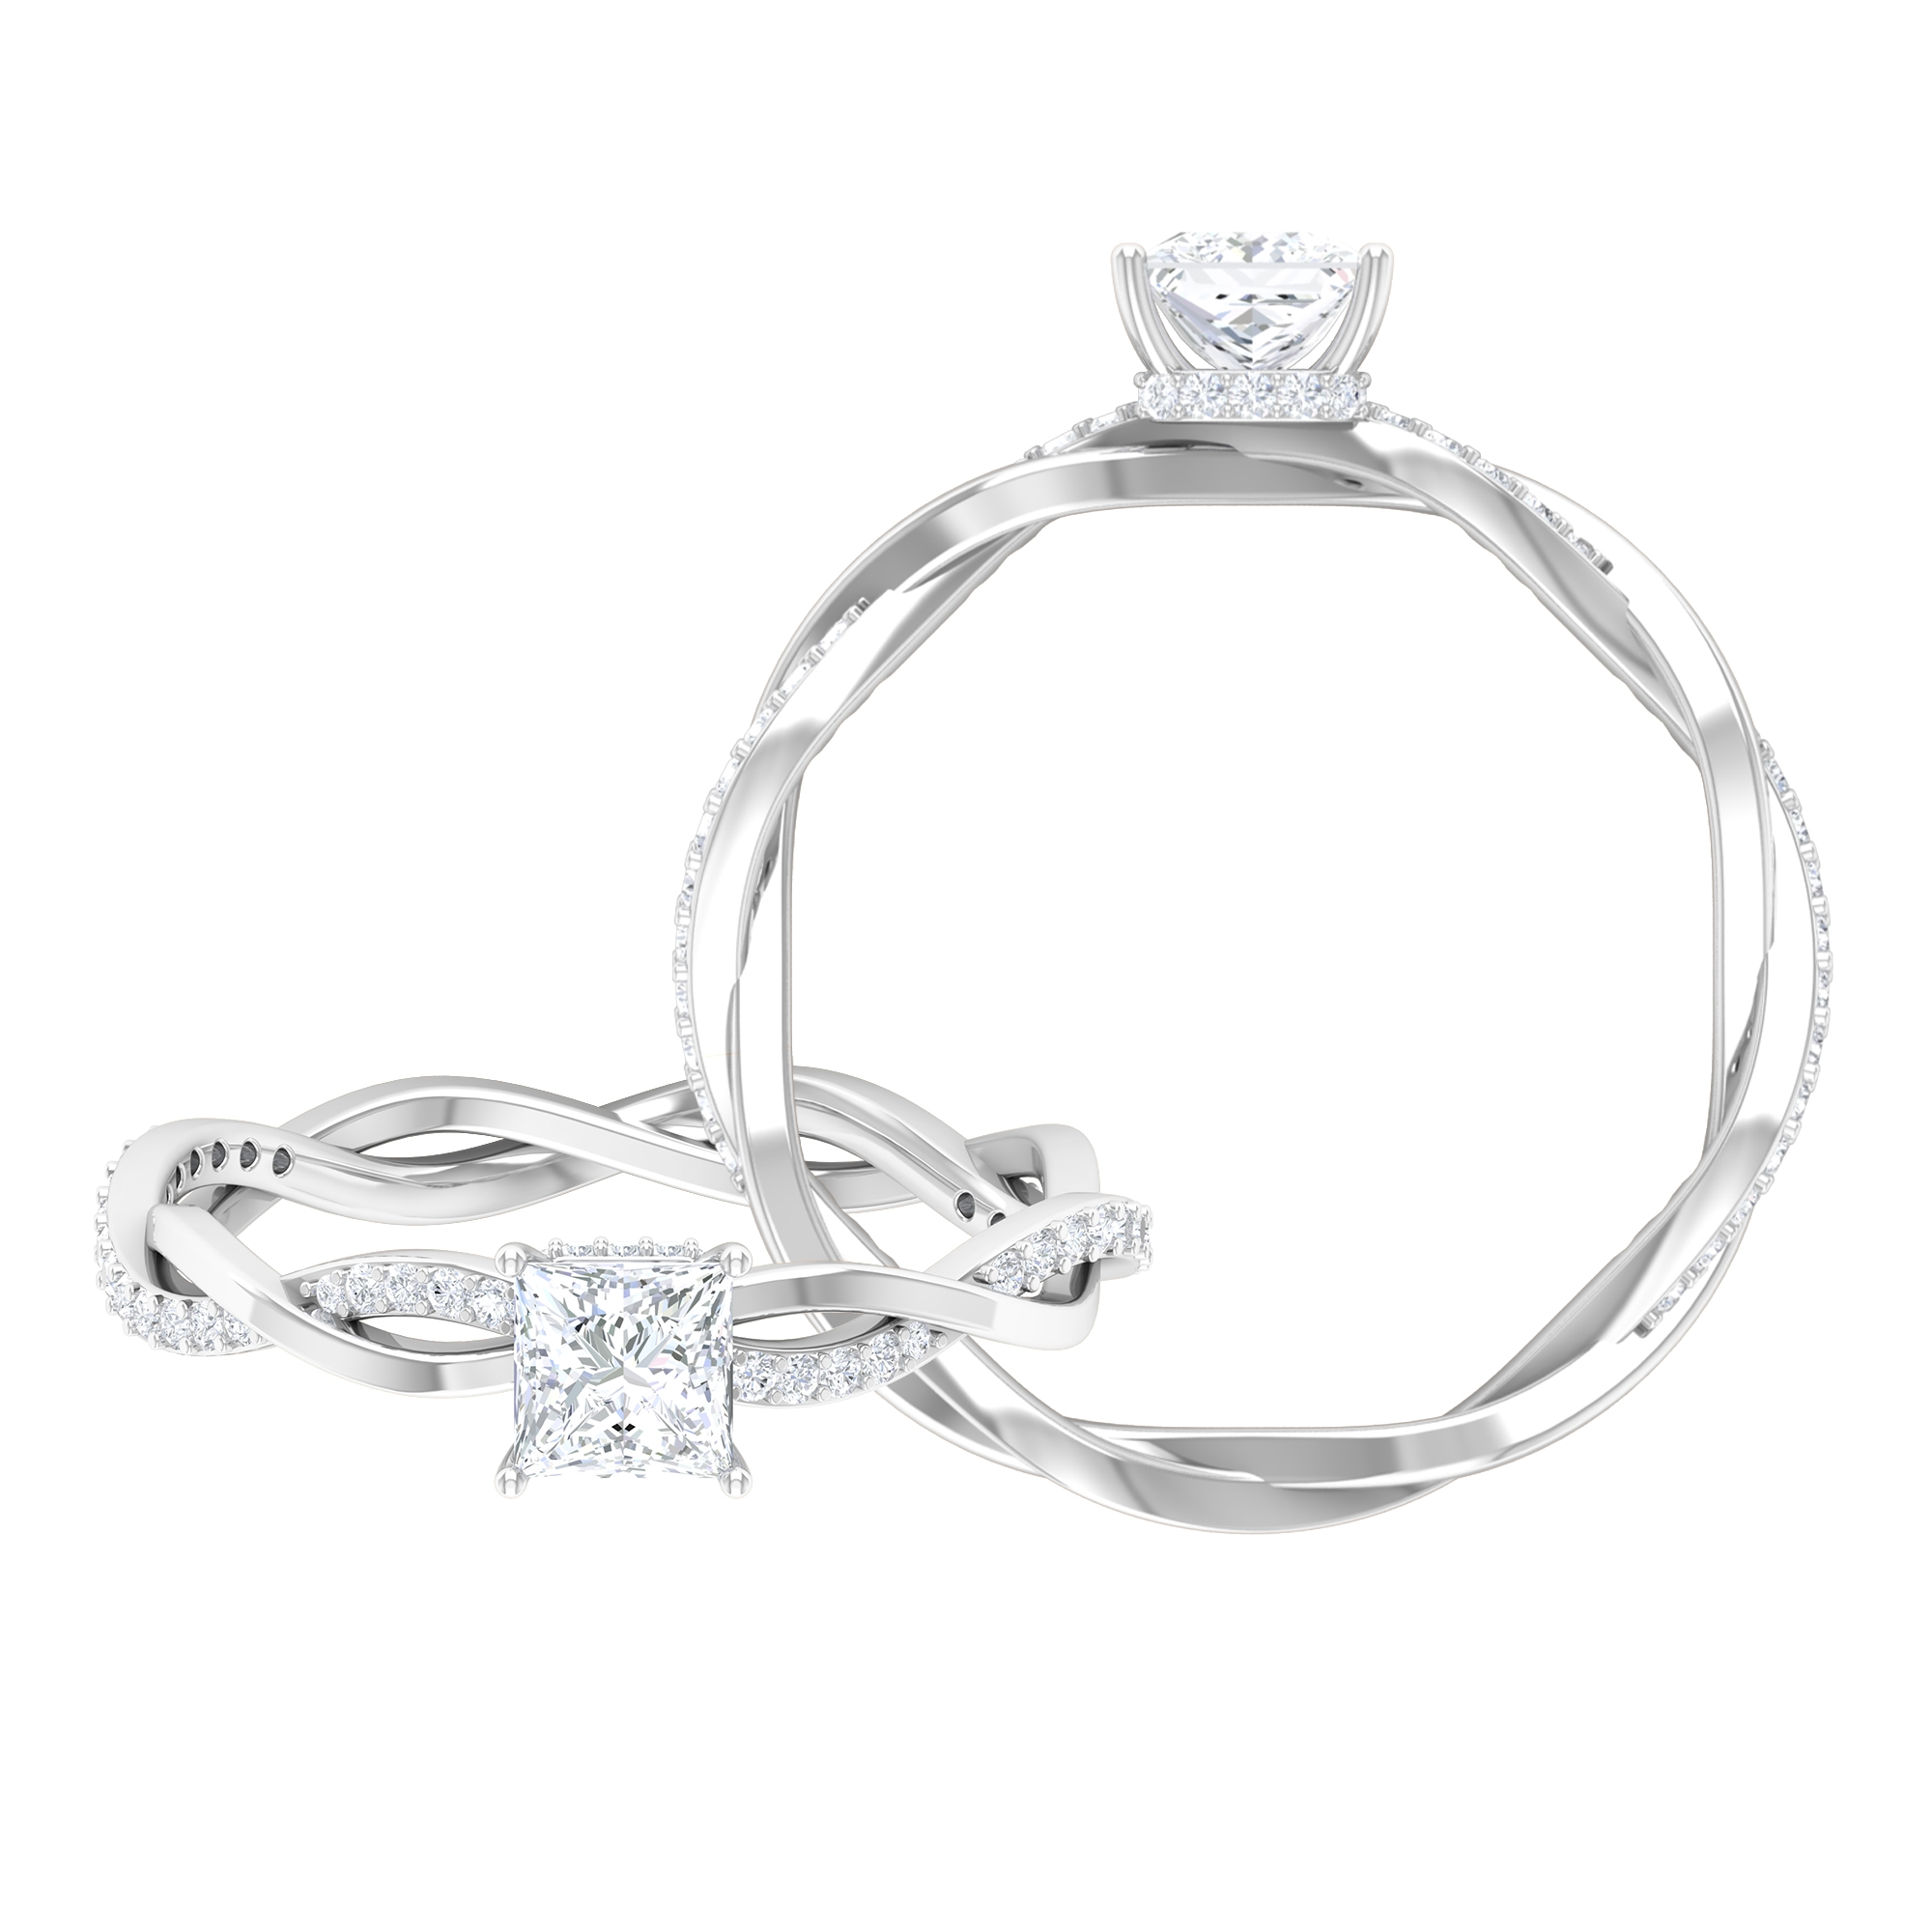 3/4 CT Princess Cut Solitaire Diamond Braided Ring with Hidden Halo